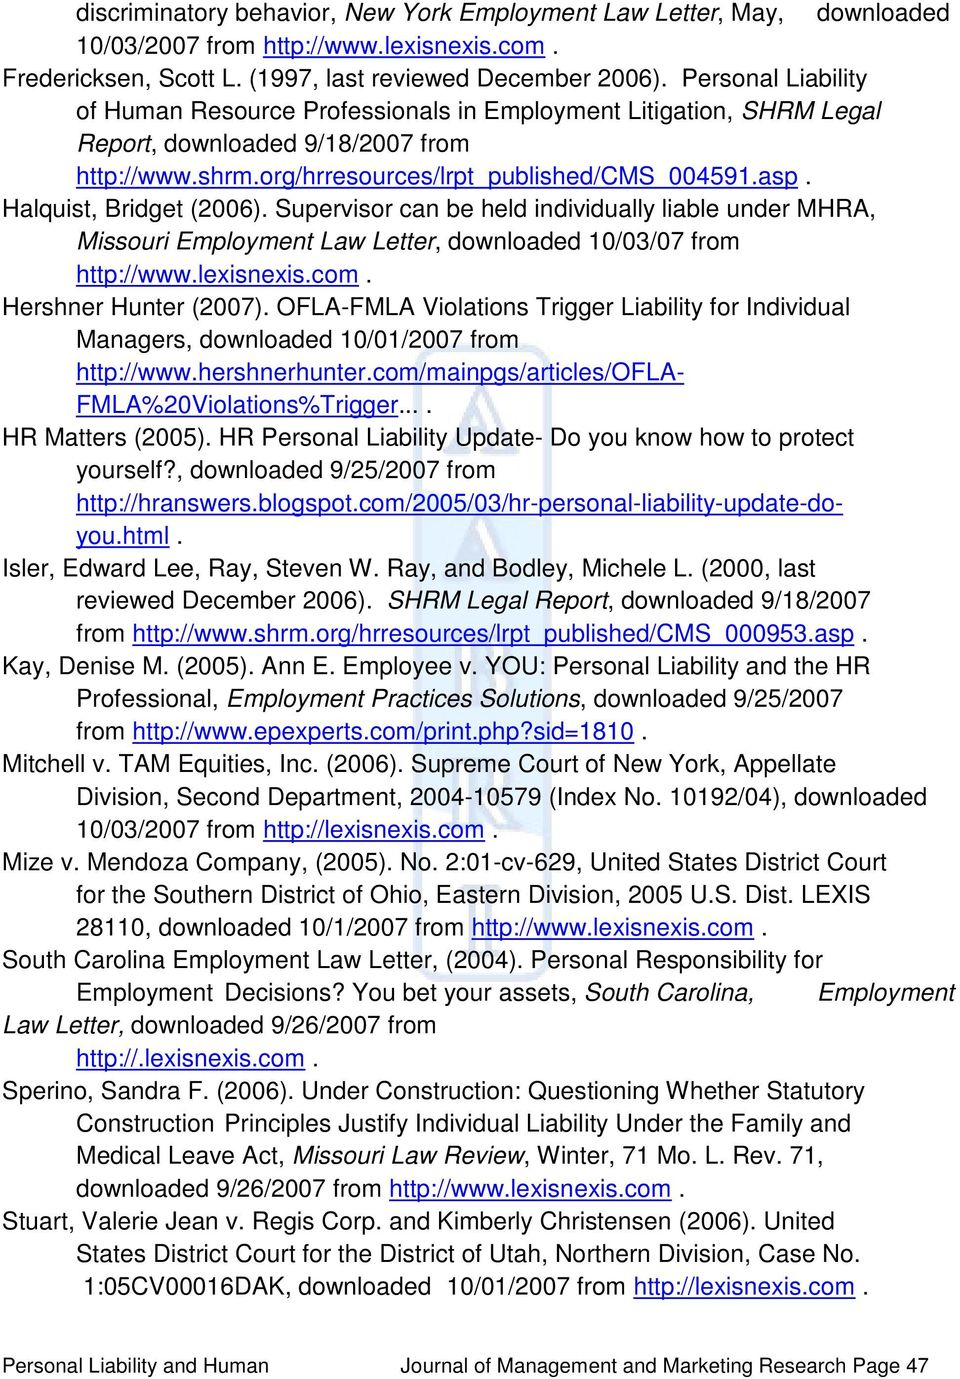 Halquist, Bridget (2006). Supervisor can be held individually liable under MHRA, Missouri Employment Law Letter, downloaded 10/03/07 from http://www.lexisnexis.com. Hershner Hunter (2007).